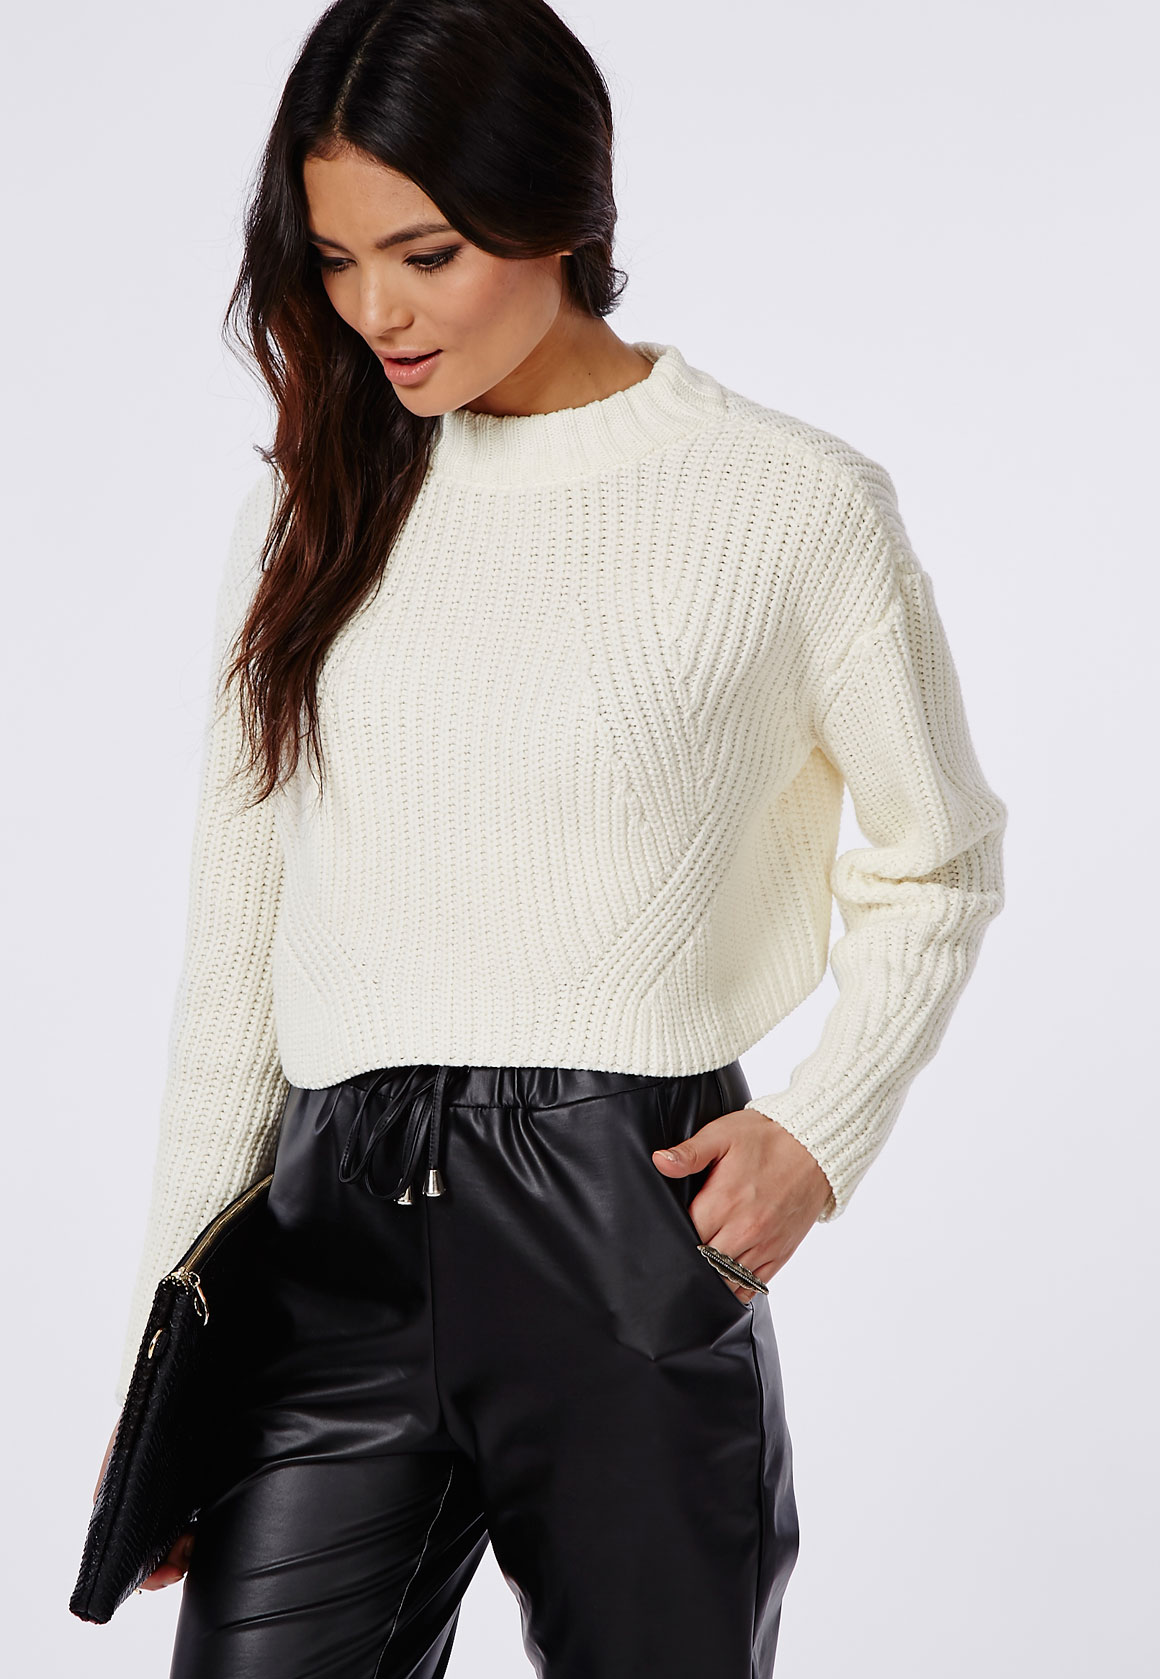 High Neck Sweater Dress Cropped High Neck Knit Sweater